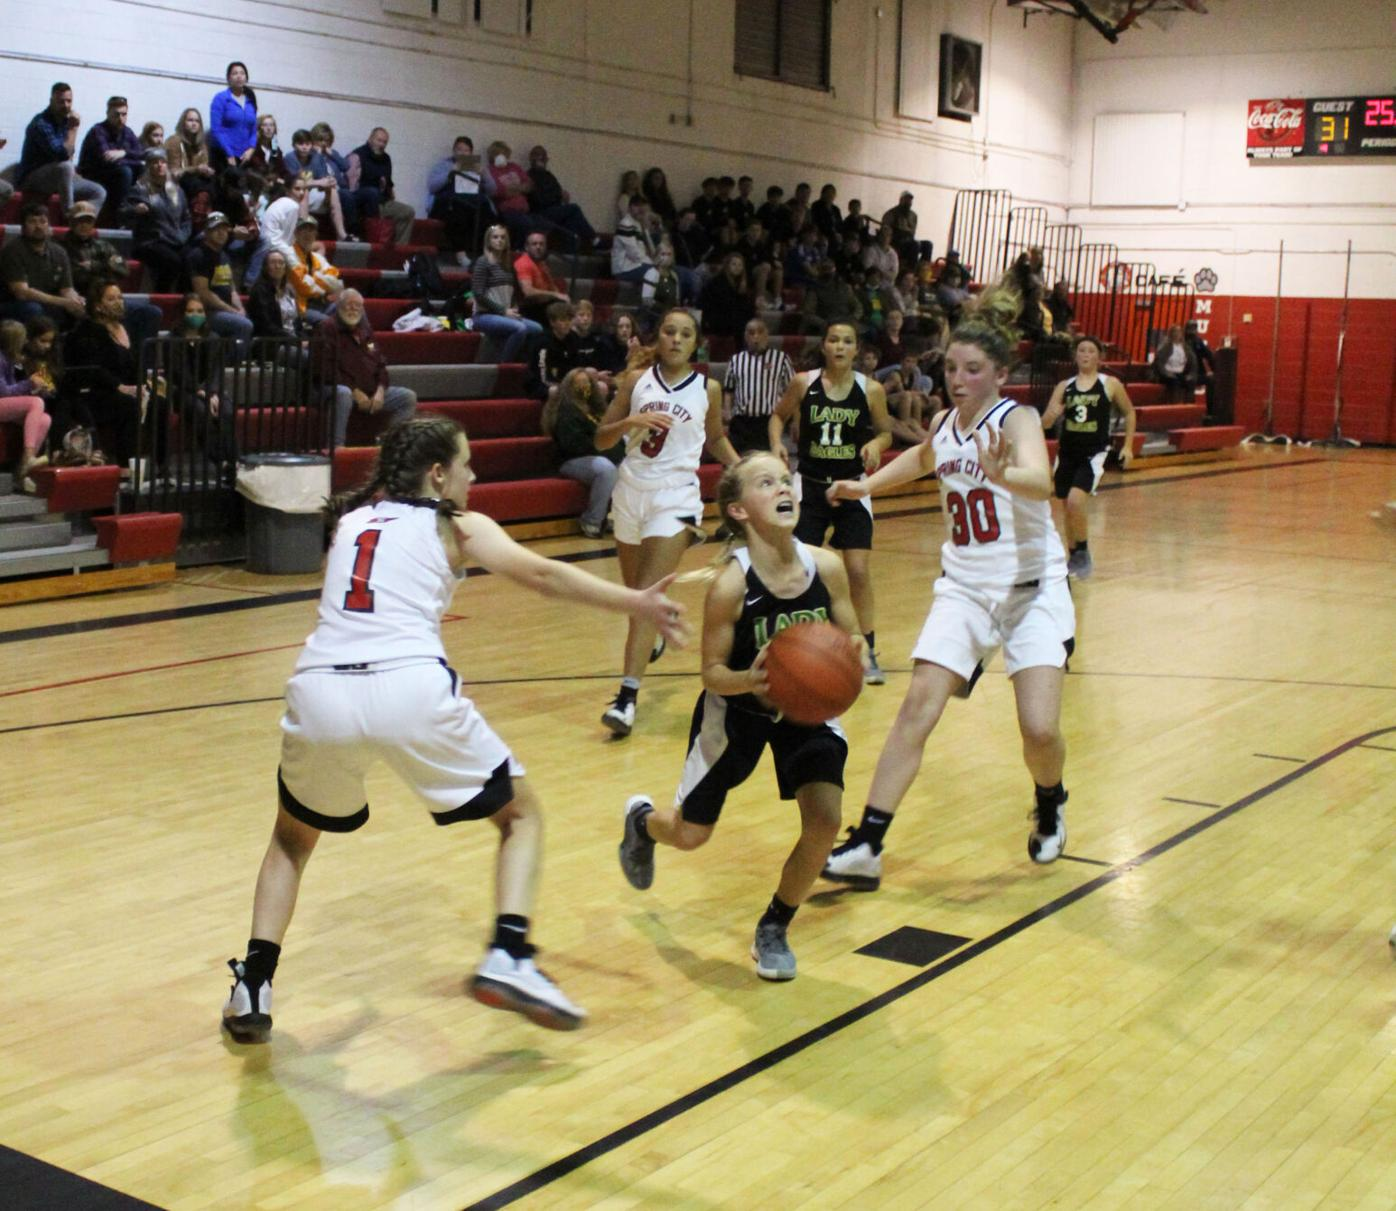 RMS/SCMS HOOPS MATCHUP ENDS IN SPLIT